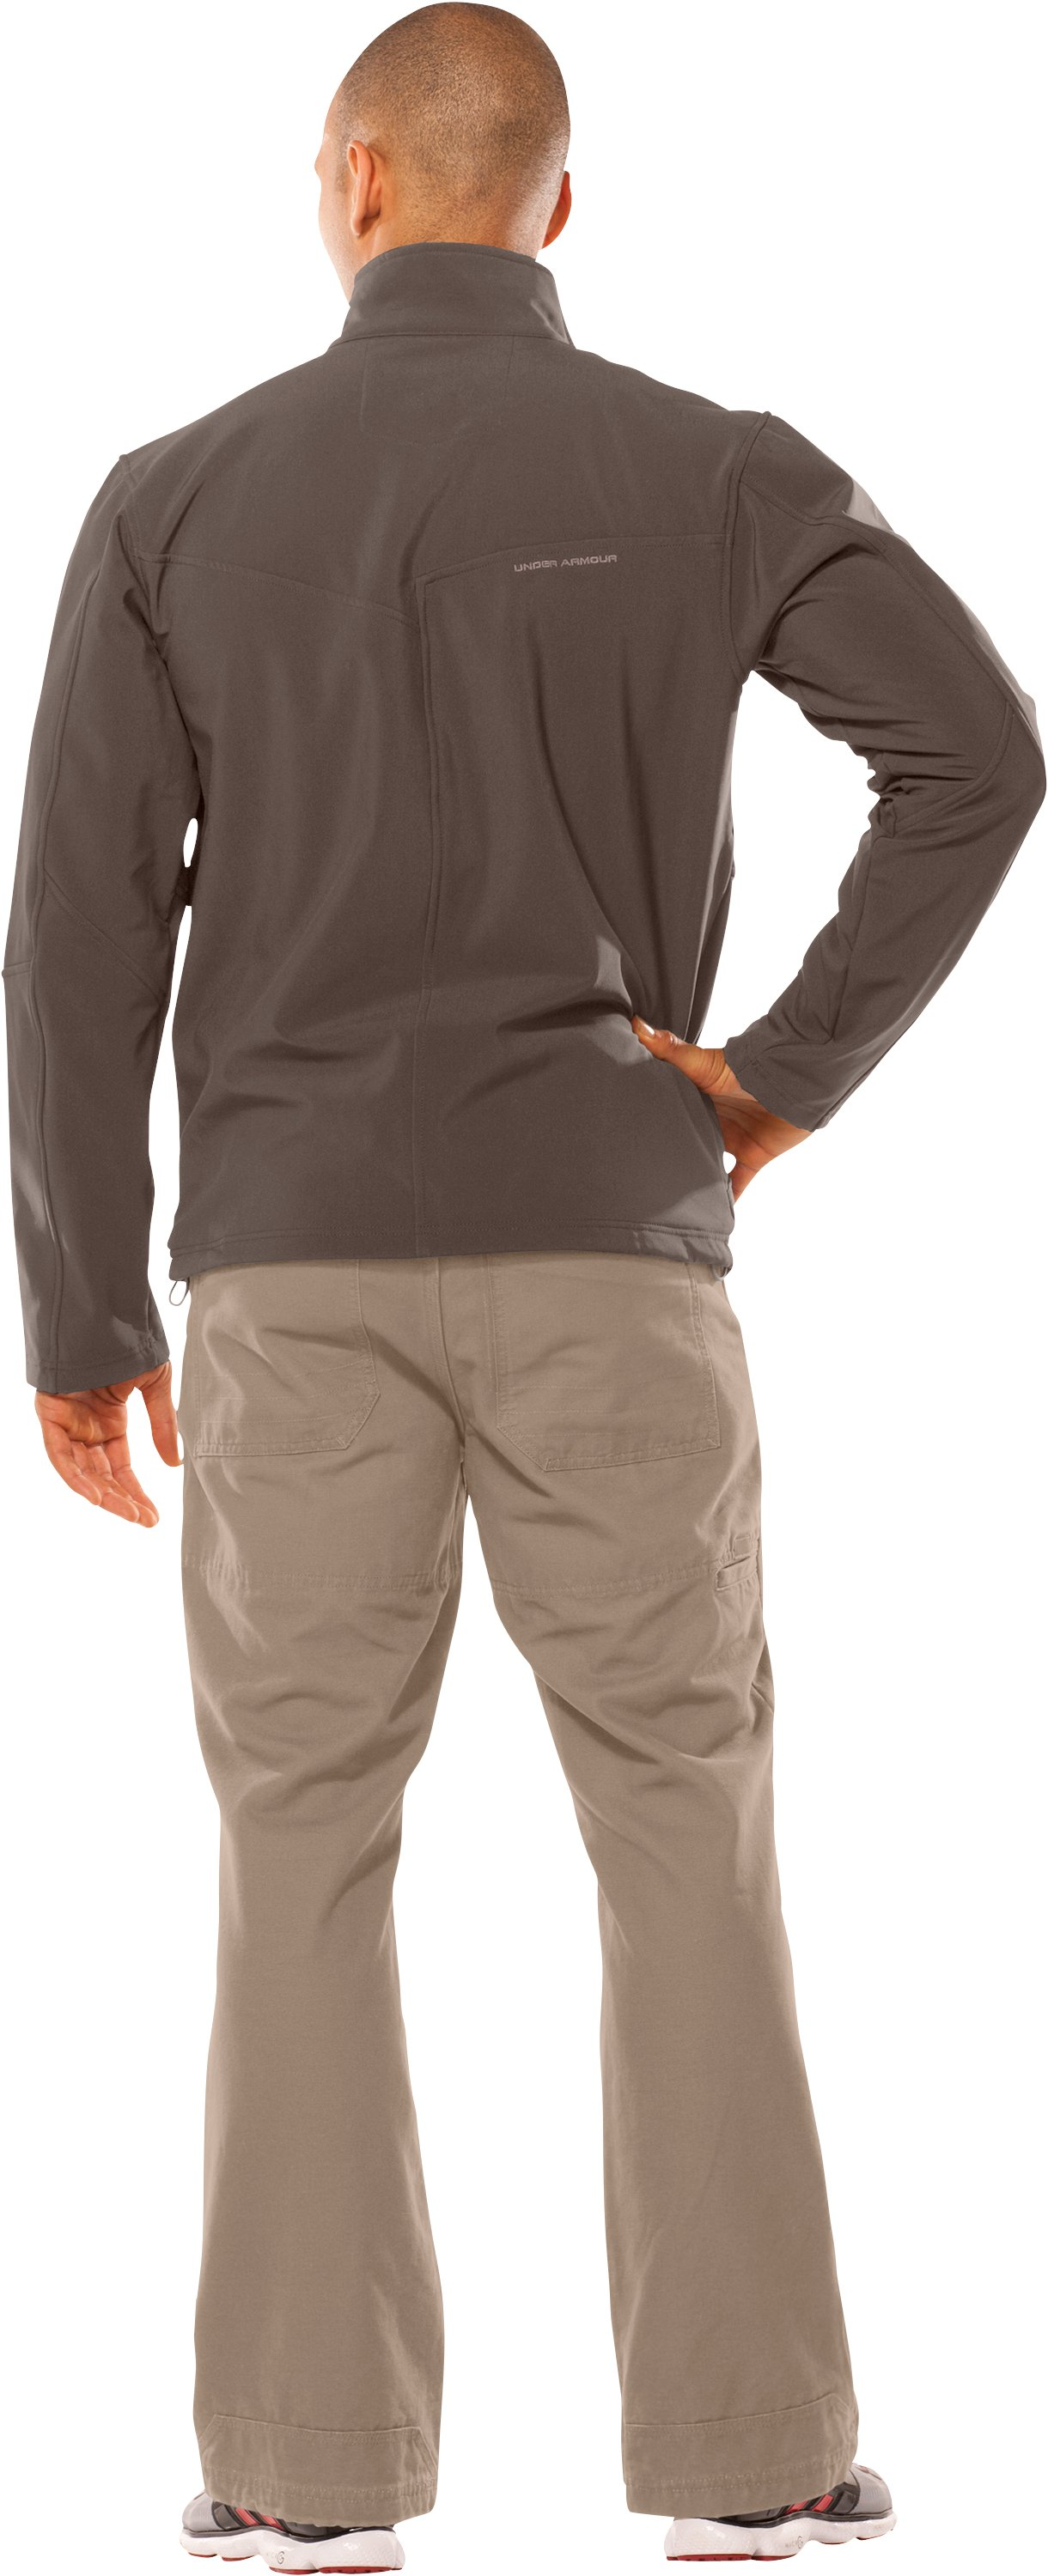 Men's Skyscraper Softshell Jacket, Hearthstone, Back